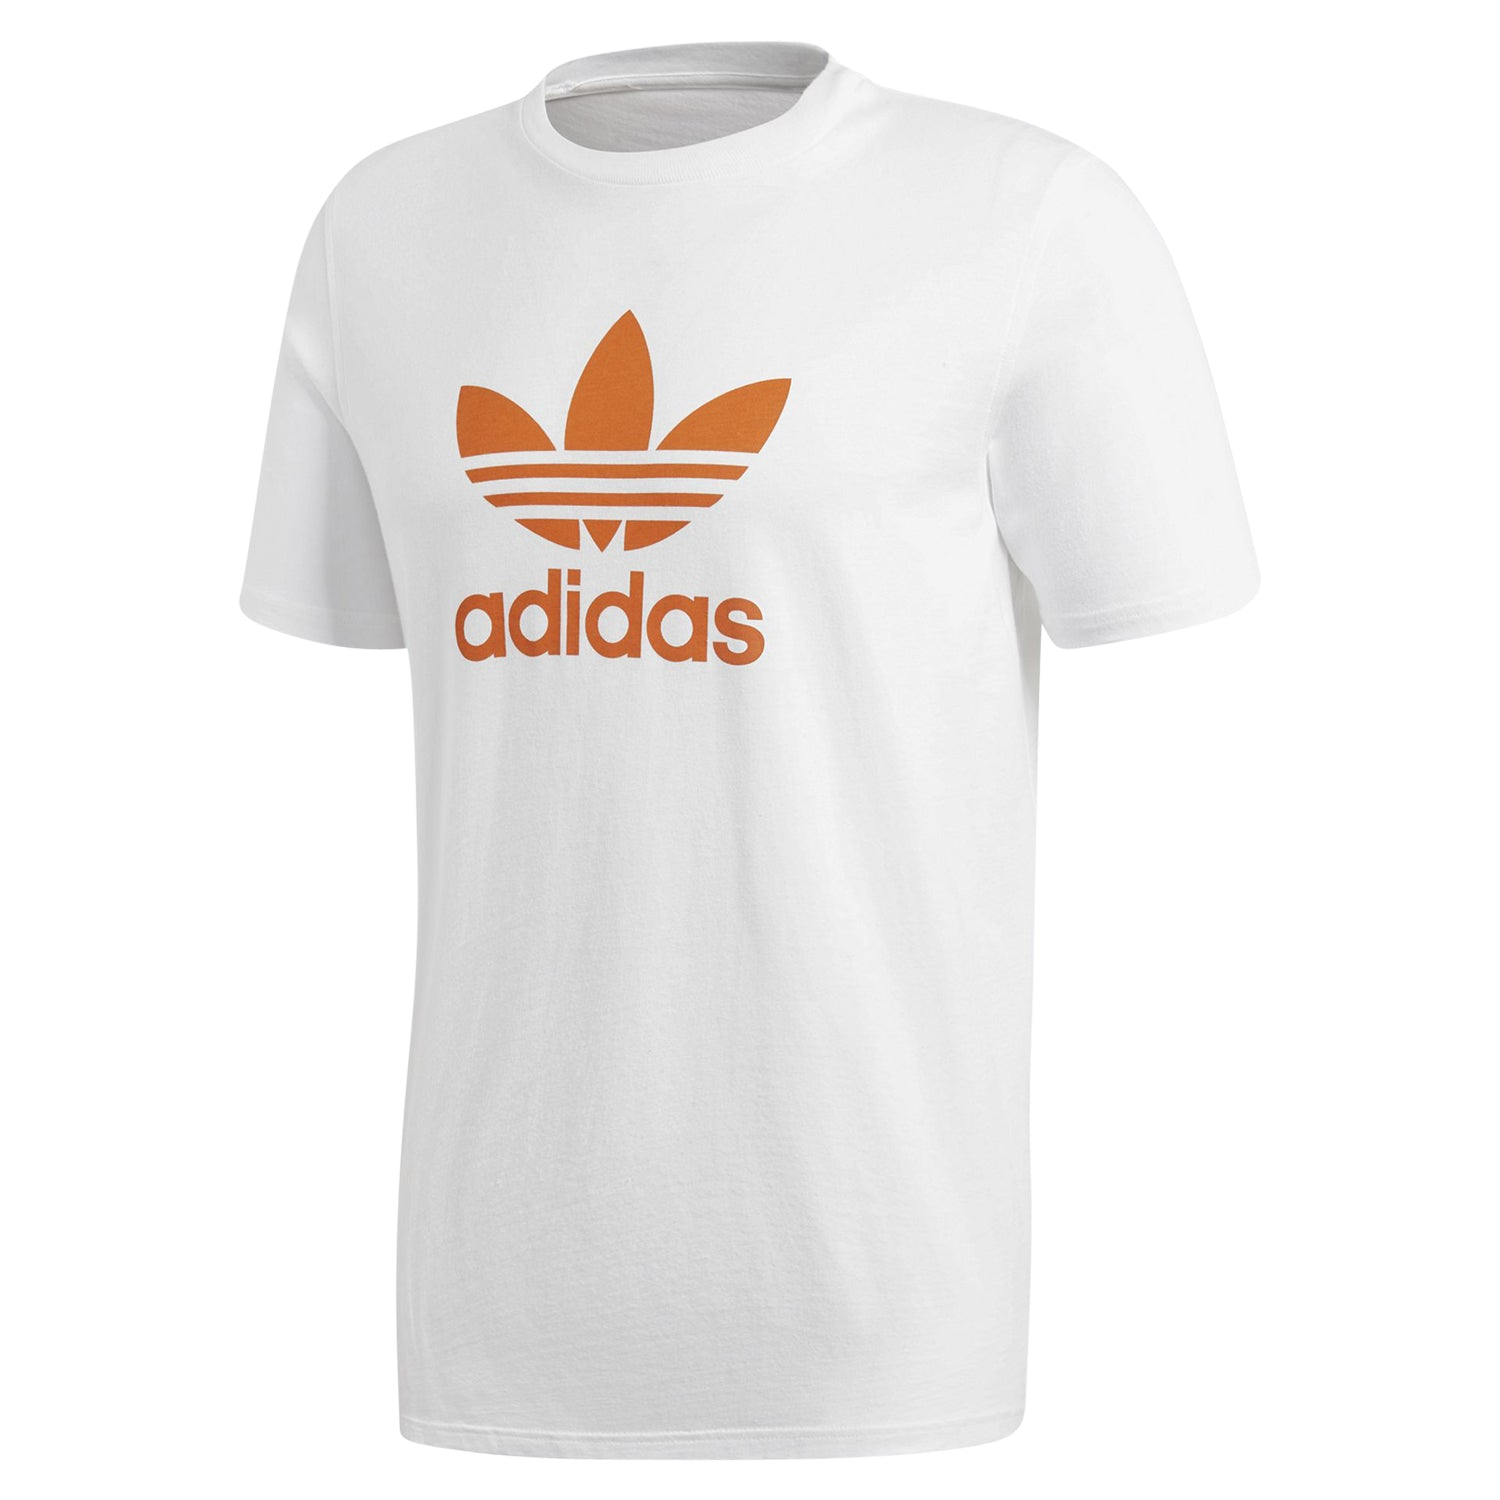 online shop new products lower price with adidas Originals Men's Crew Neck Trefoil T-Shirt - White